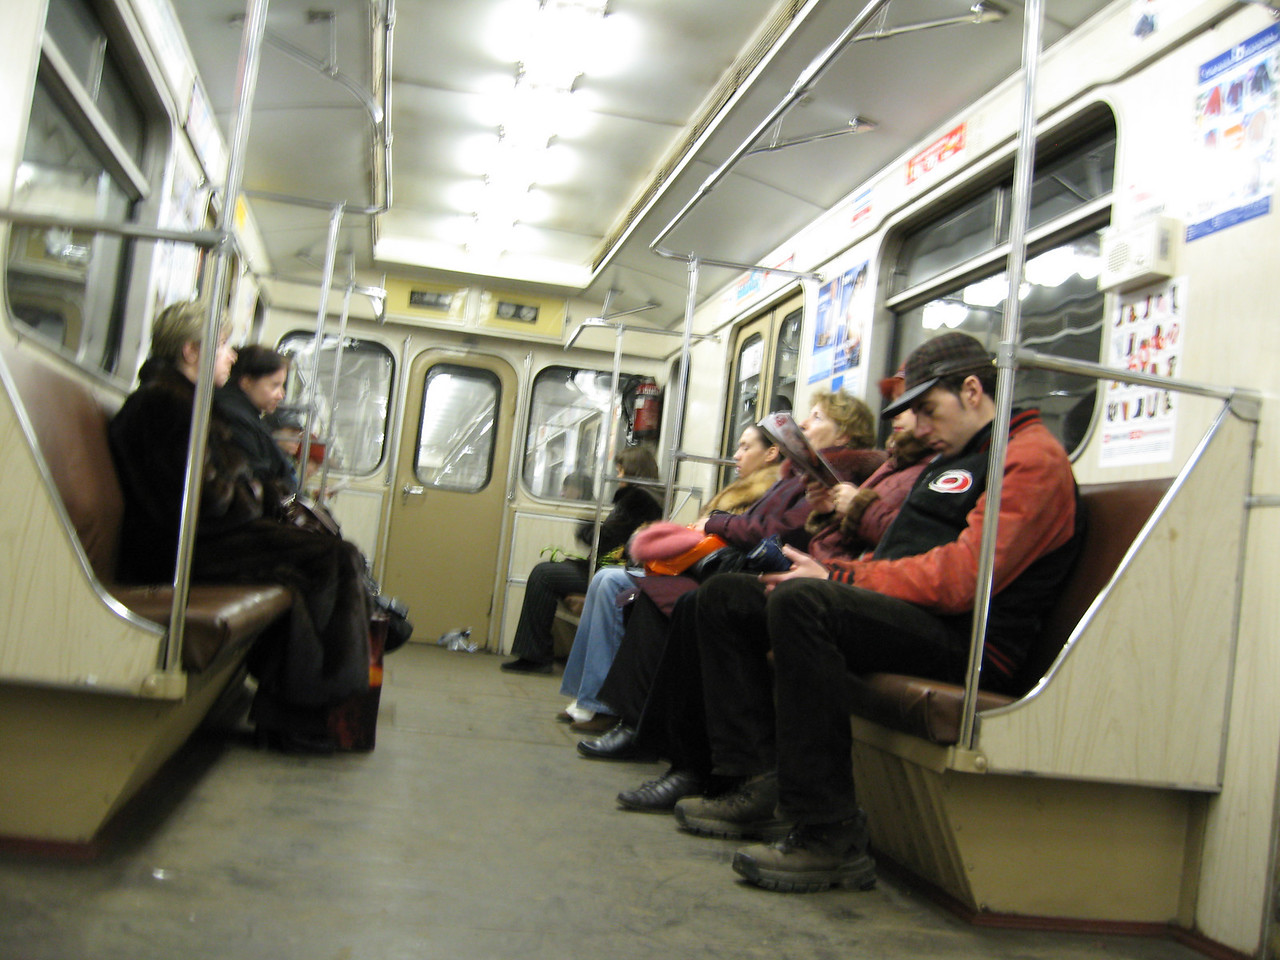 A quick shot of a subway car.  I tried not to be too obvious about it... I shot some video in the metro stations as well, but that will probably have to wait for editing and such before I upload.